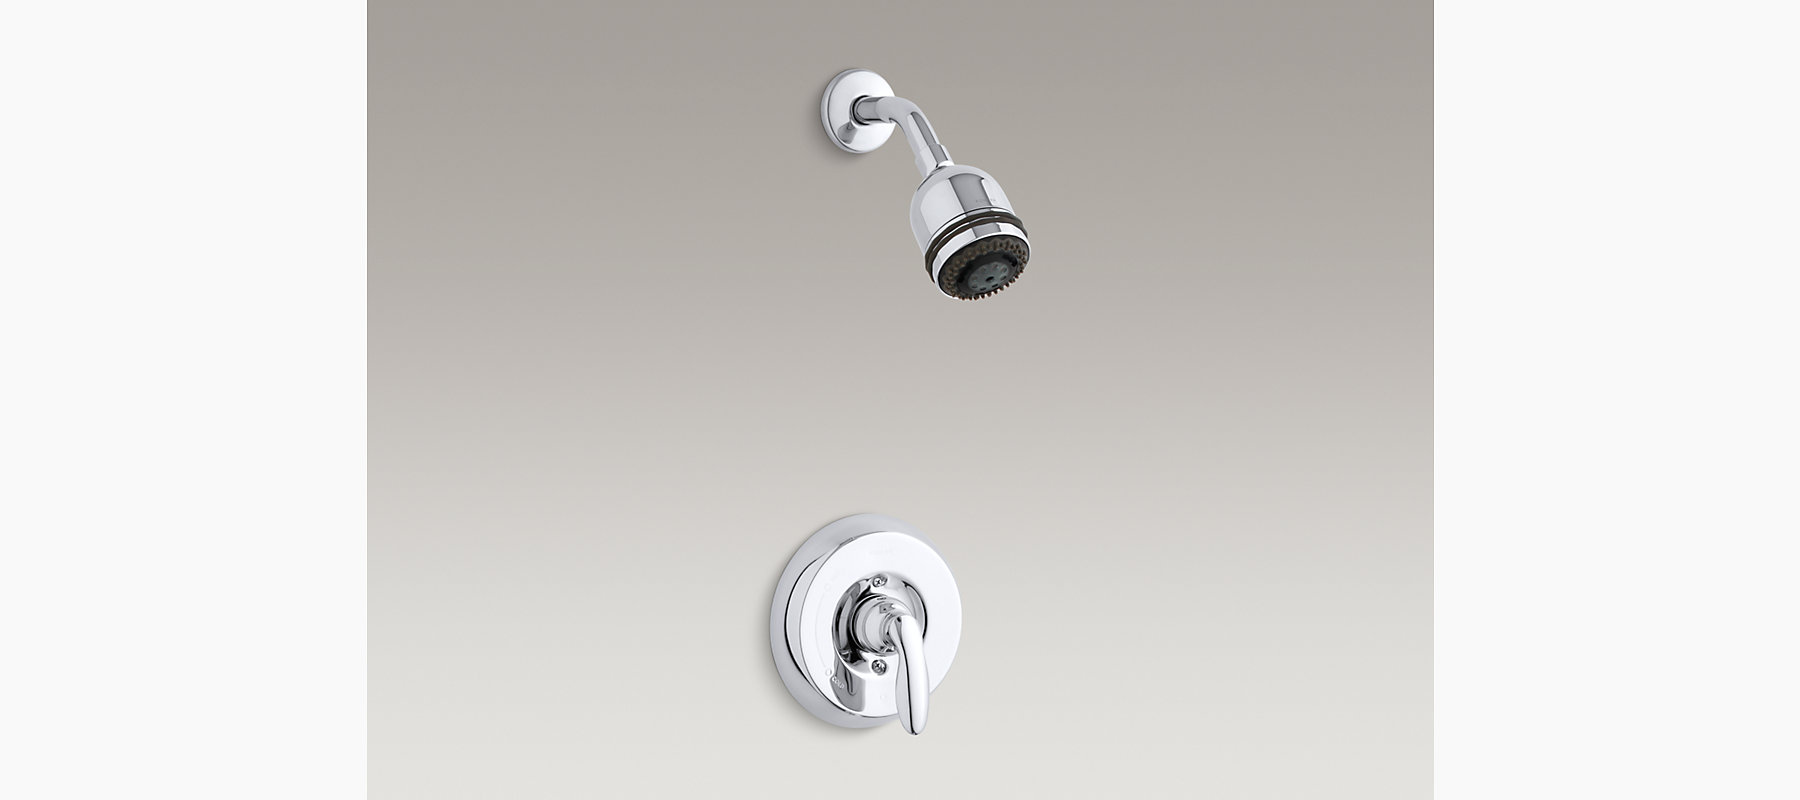 to cost moen mixing how replacement imposing alsons full design size valve delta kohler youtube mixingalve repair shower photos of showertub